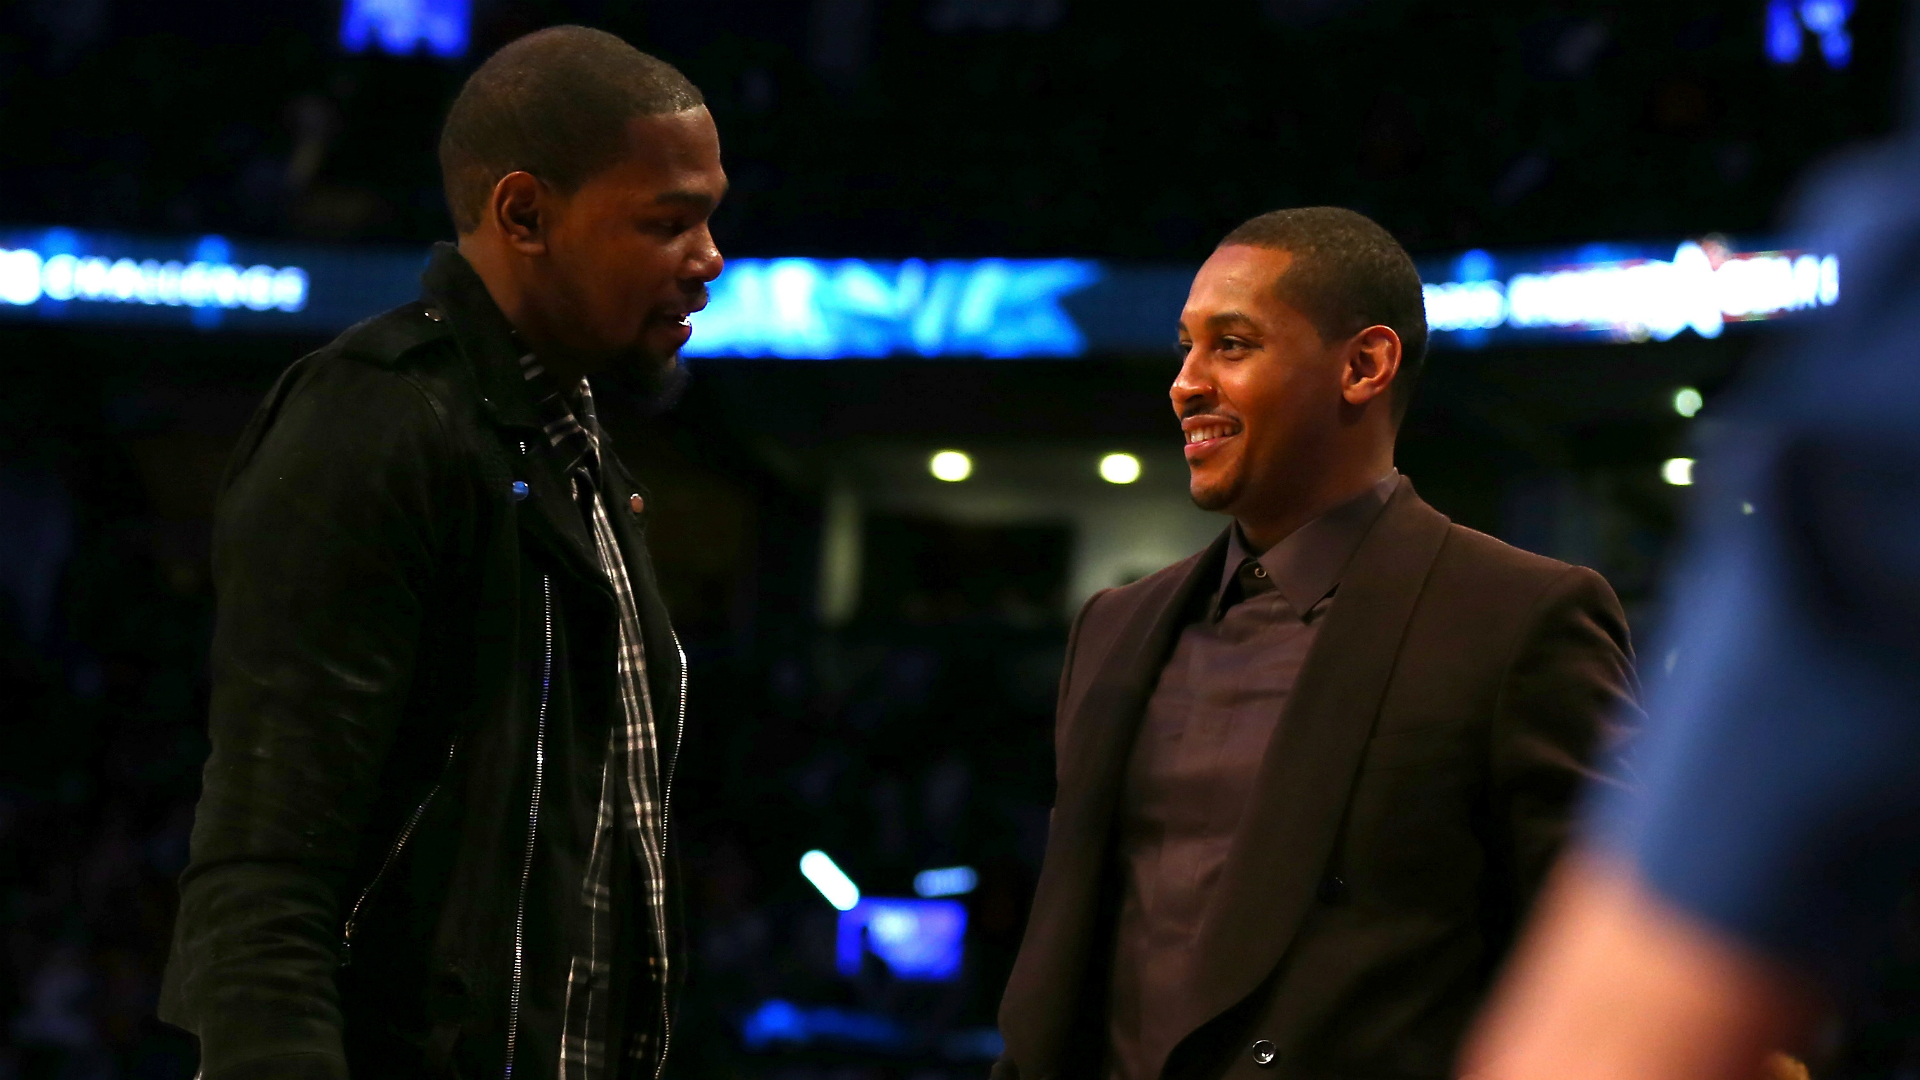 Kevin-Durant-Carmelo-Anthony-Getty-FTR-021416